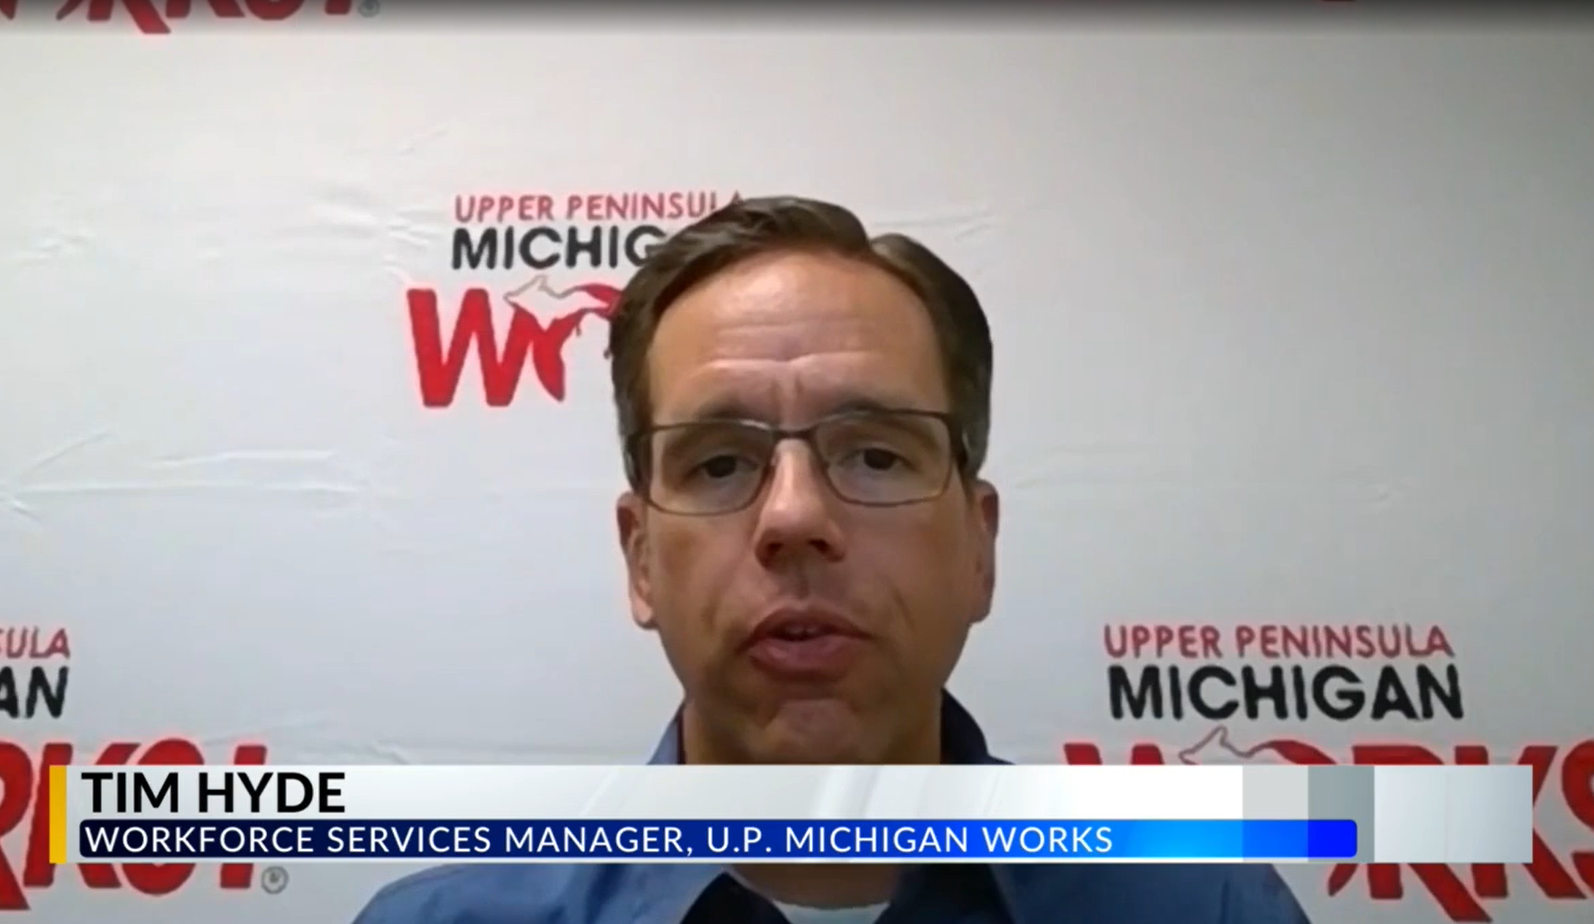 Tim Hyde sits in front of a white Michigan Works background during an interview.